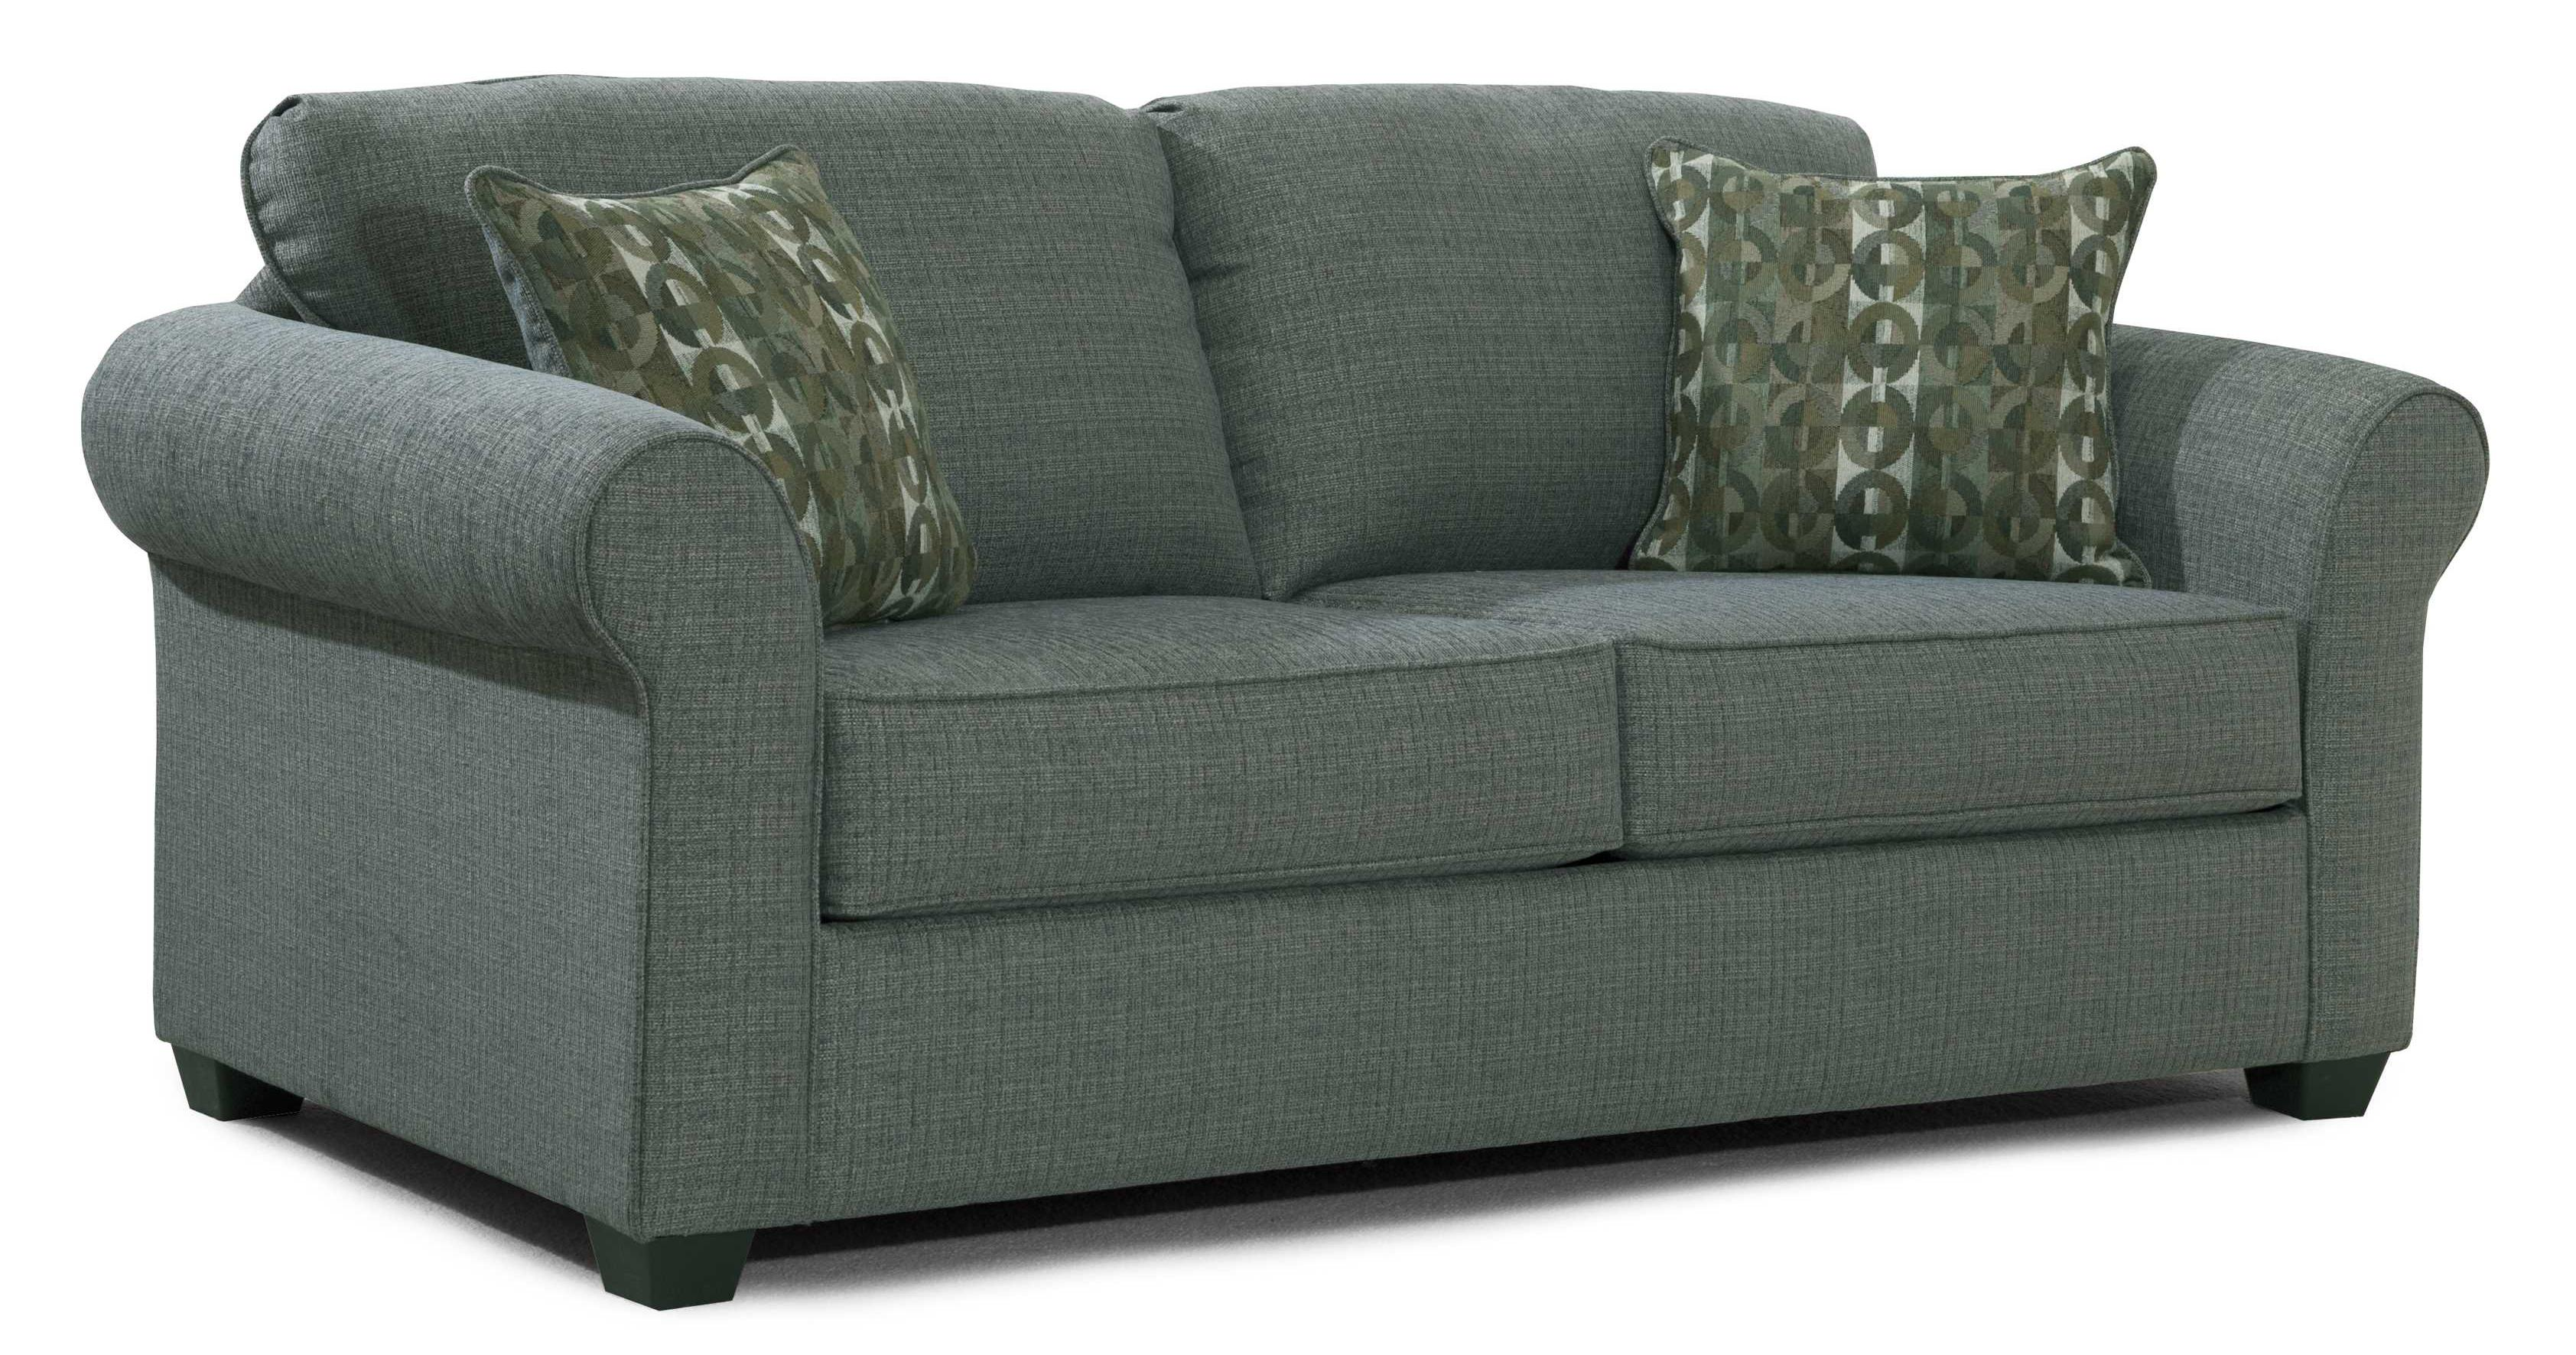 Serta Upholstery By Hughes Furniture 1750 Casual Full Sofa Sleeper With Sock Arms Rooms For Less Sleeper Sofas